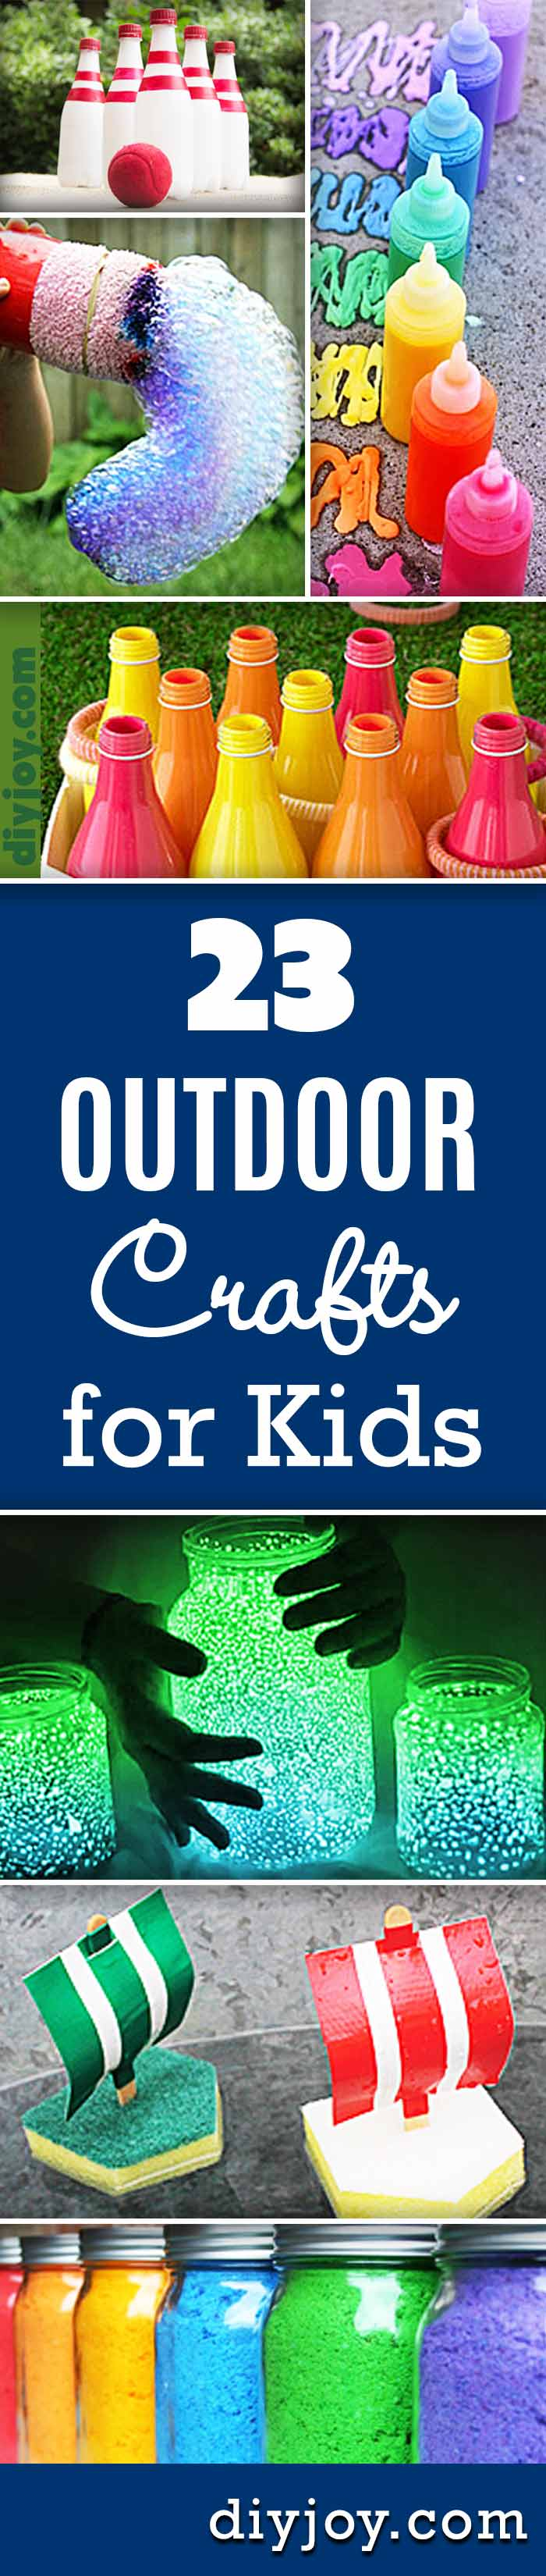 23 Incredibly Fun Outdoor Crafts For Kids